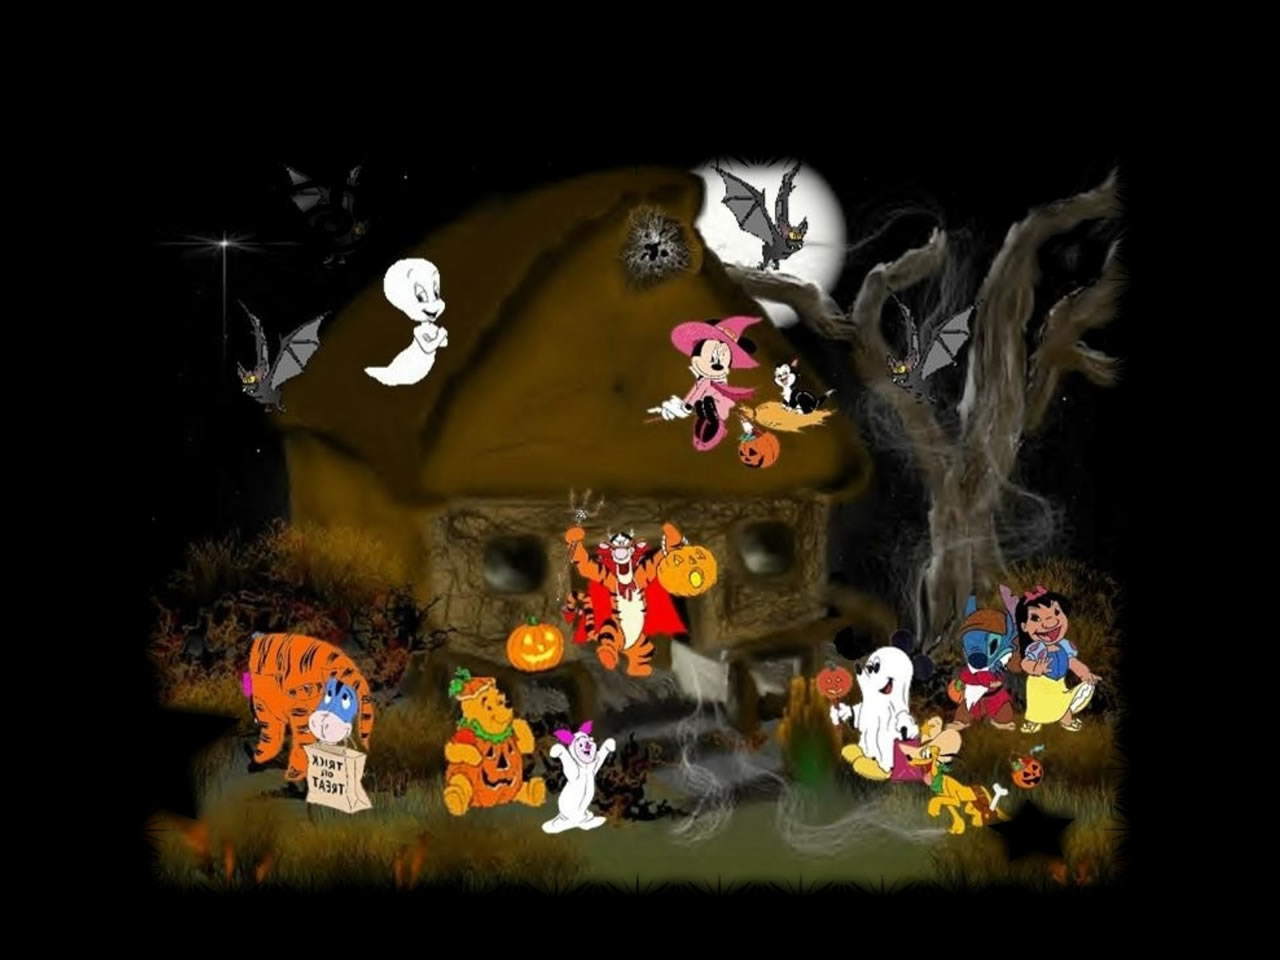 disney wallpapers on disney computer desktop wallpaper backgrounds 1280x960